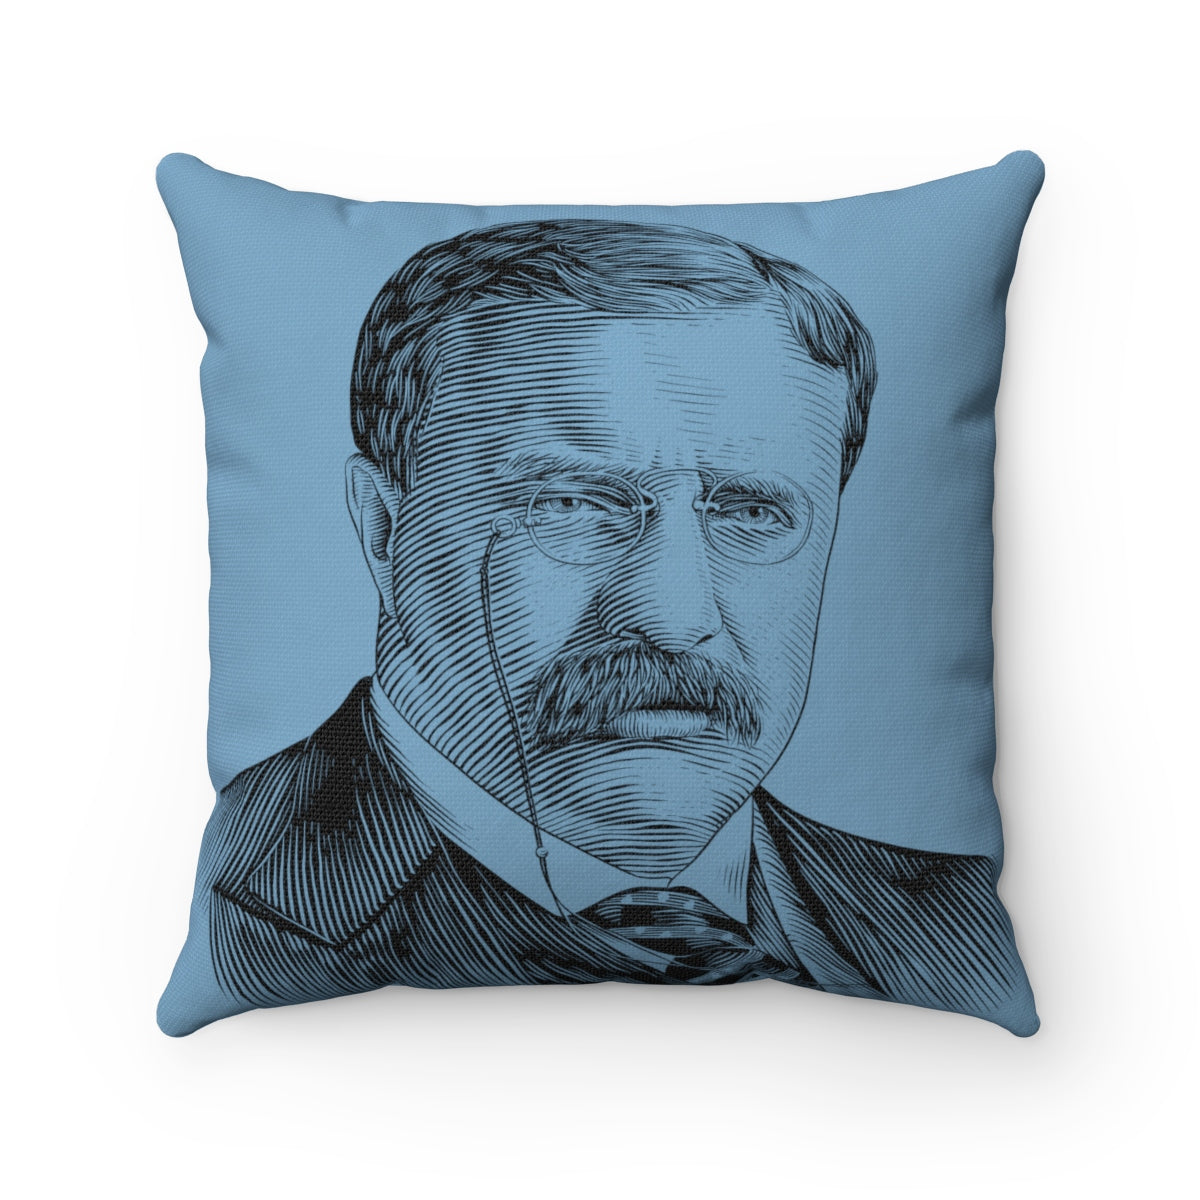 Teddy Roosevelt Square Pillow Case (Slate Blue) - Biblioriot